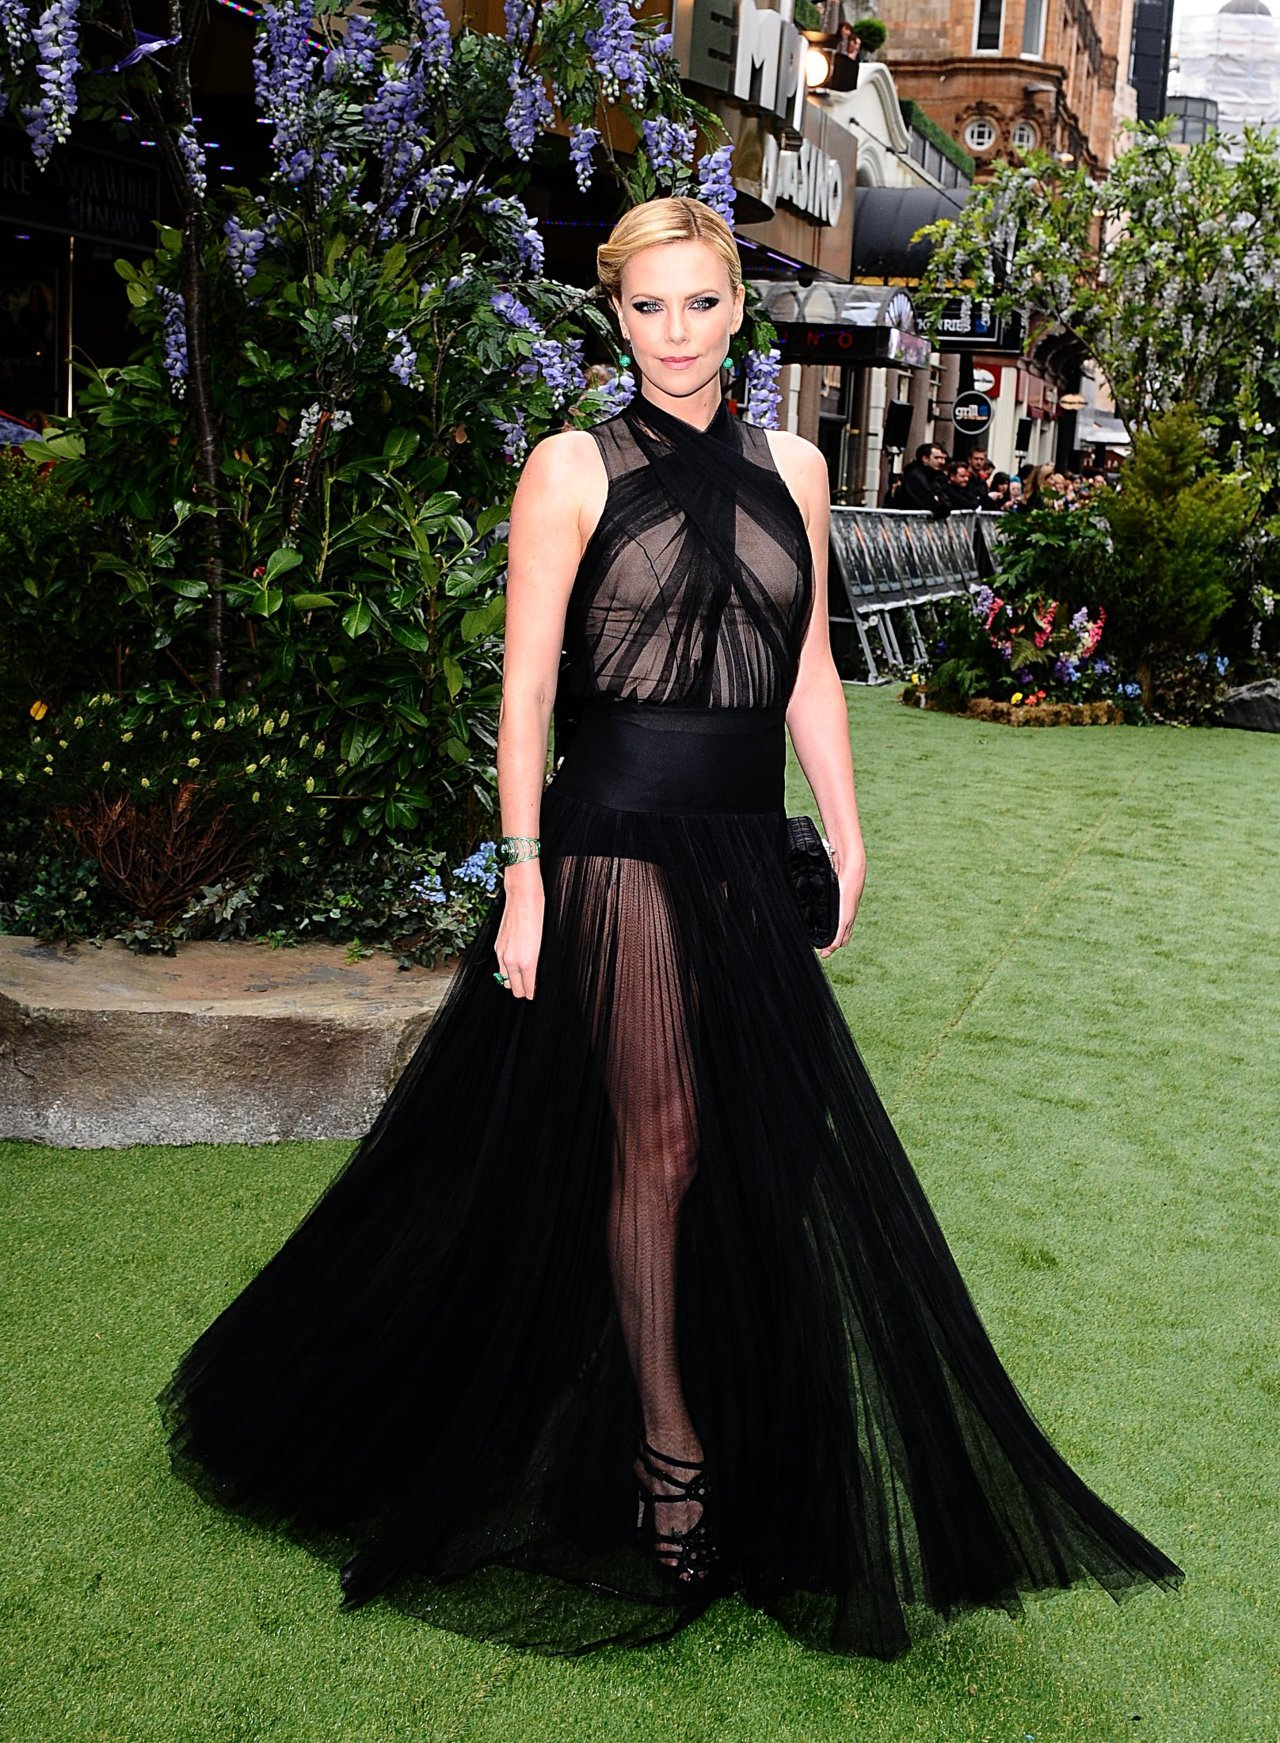 suicideblonde:  Charlize Theron wearing Dior at the London premiere of Snow White And The Huntsman, May 14th THIS IS HOW YOU DO IT, BITCHES